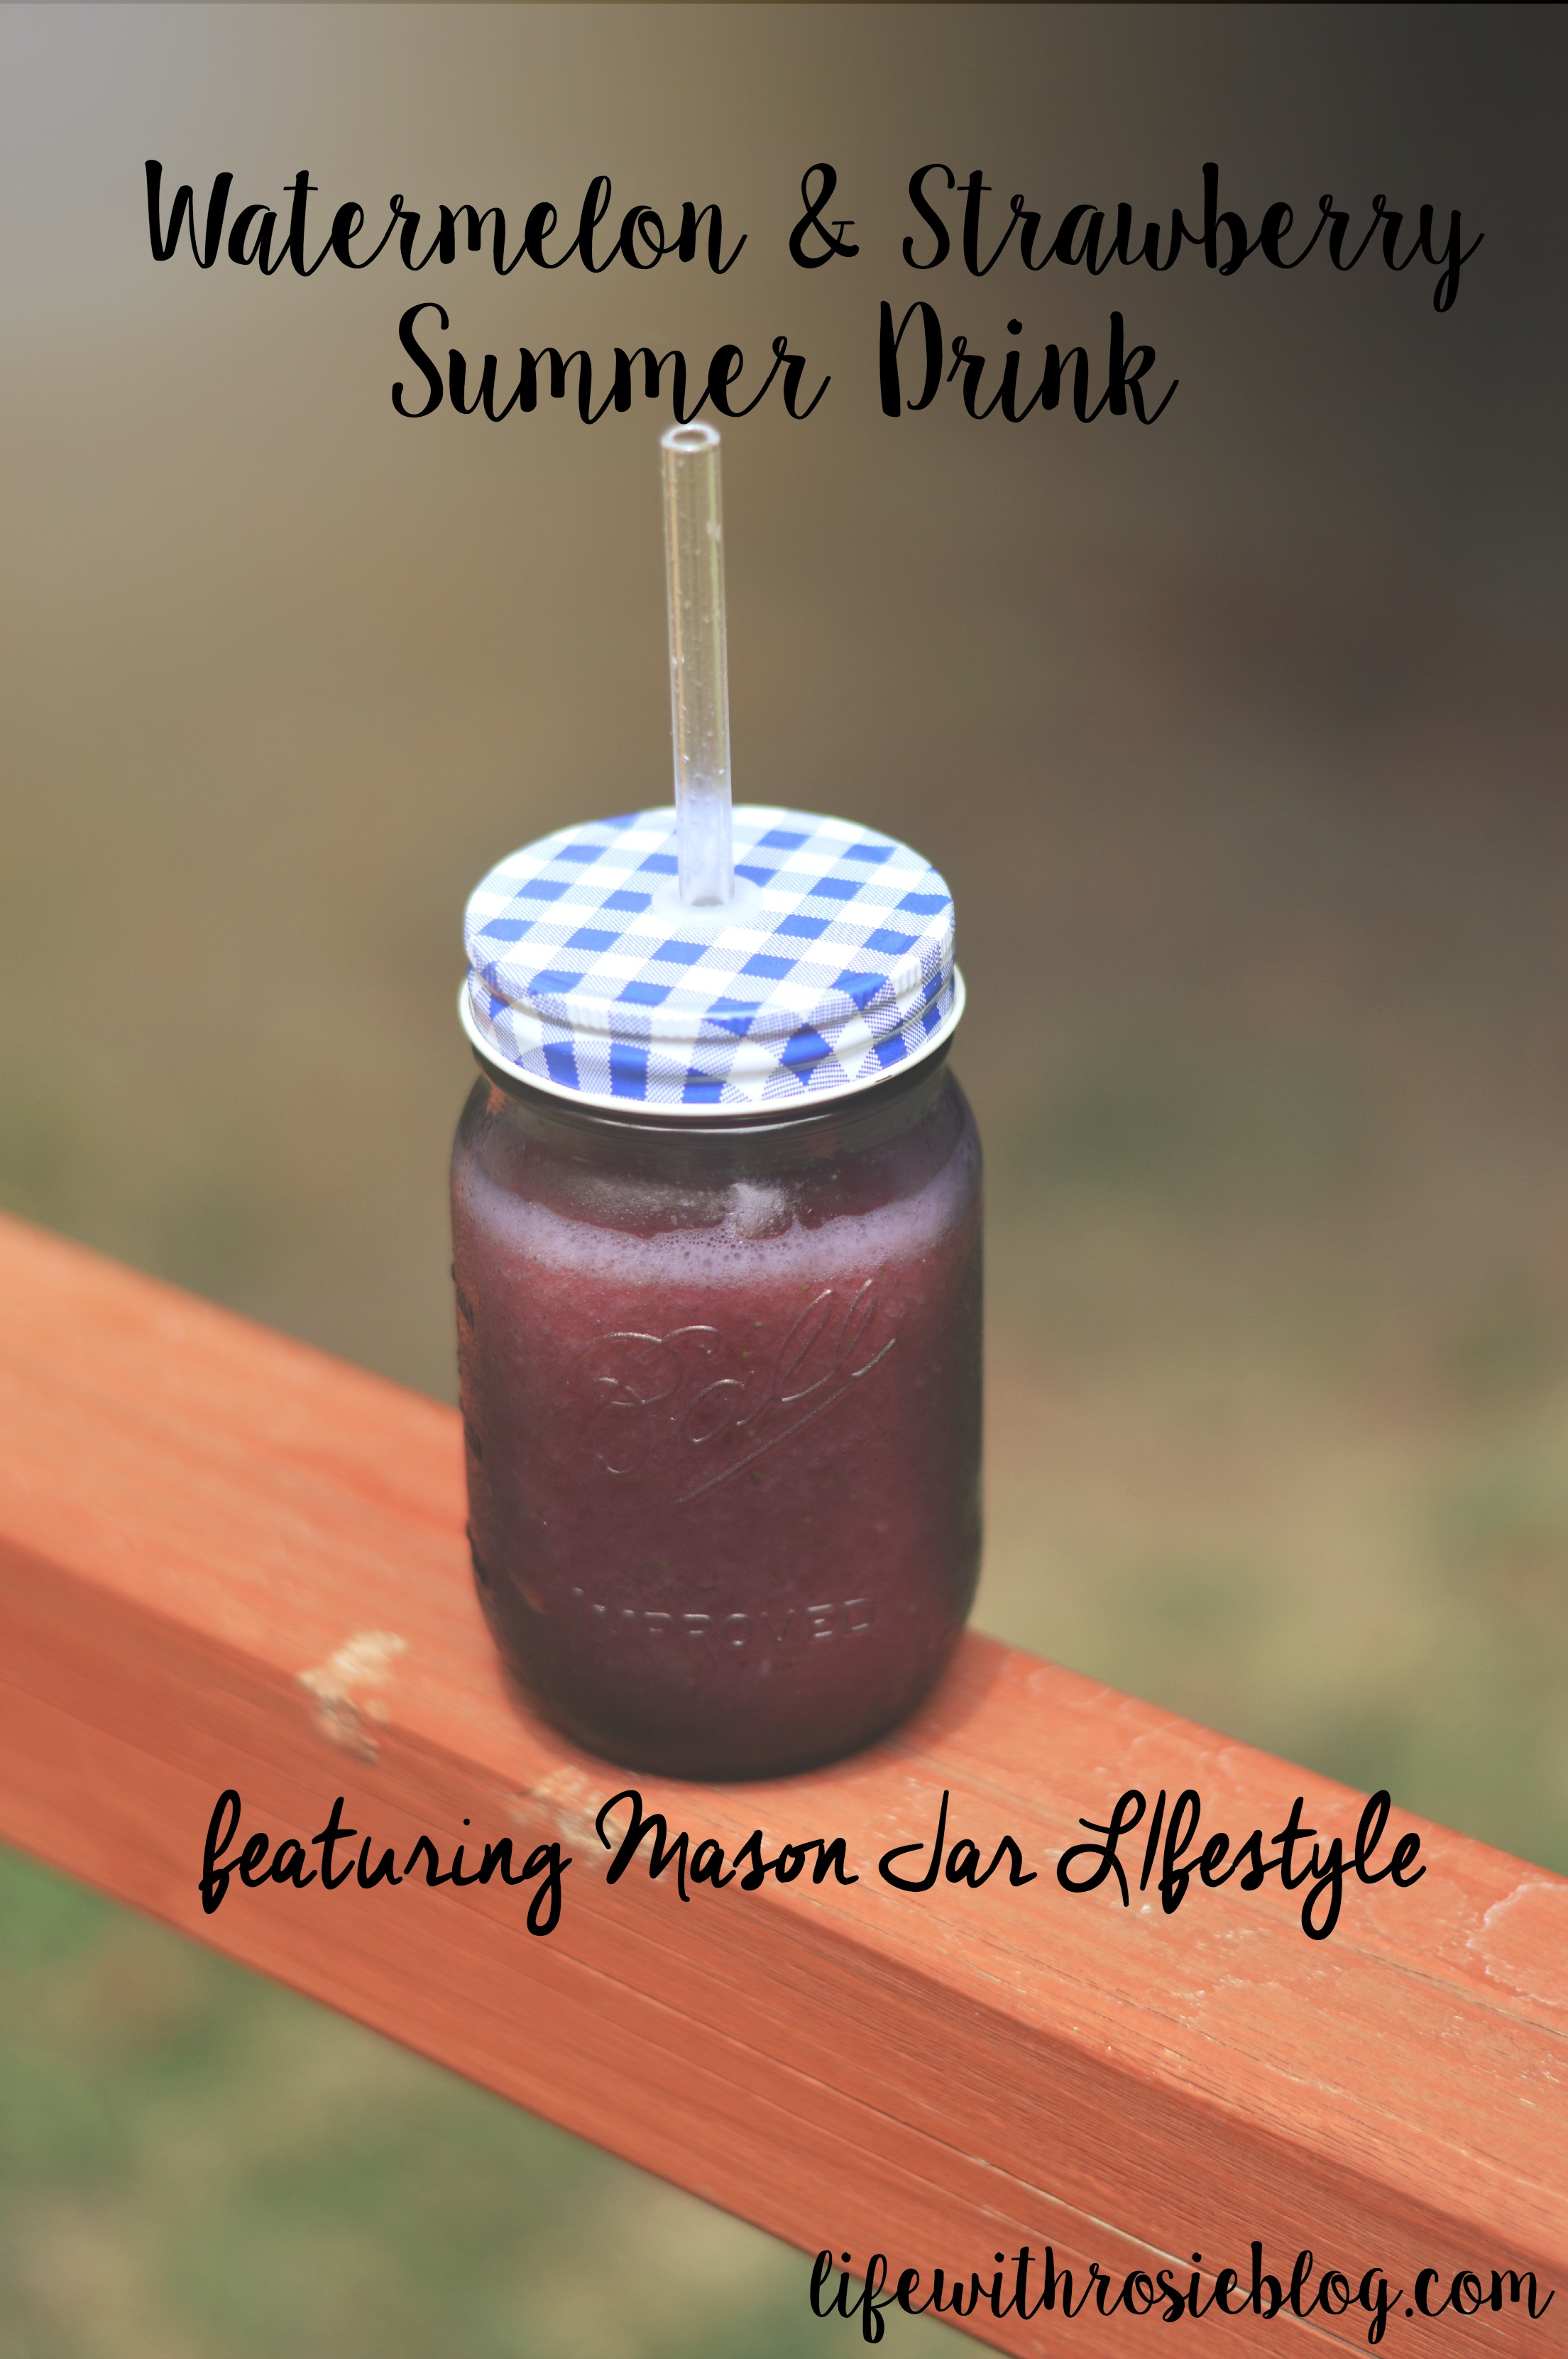 A fruity summer drink tastes ten times better in a mason jar! Mason Jar Lifestyle products make summer picnics ten times better! // Life with Rosie